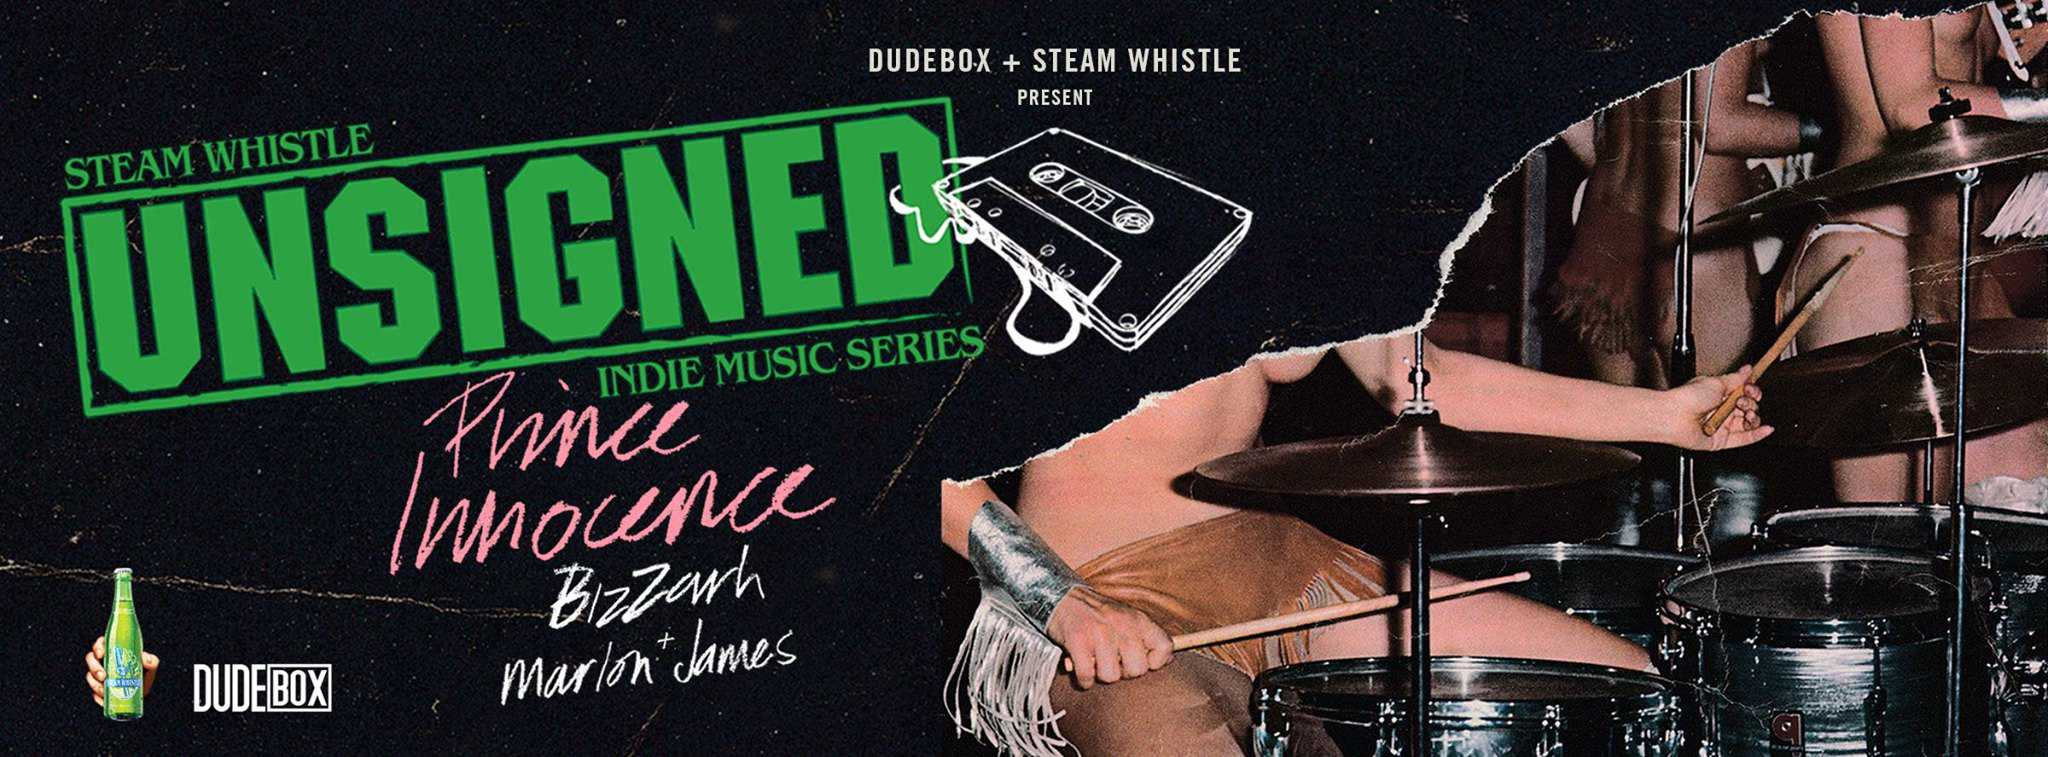 DUDEBOX and Steam Whistle Present UNSIGNED